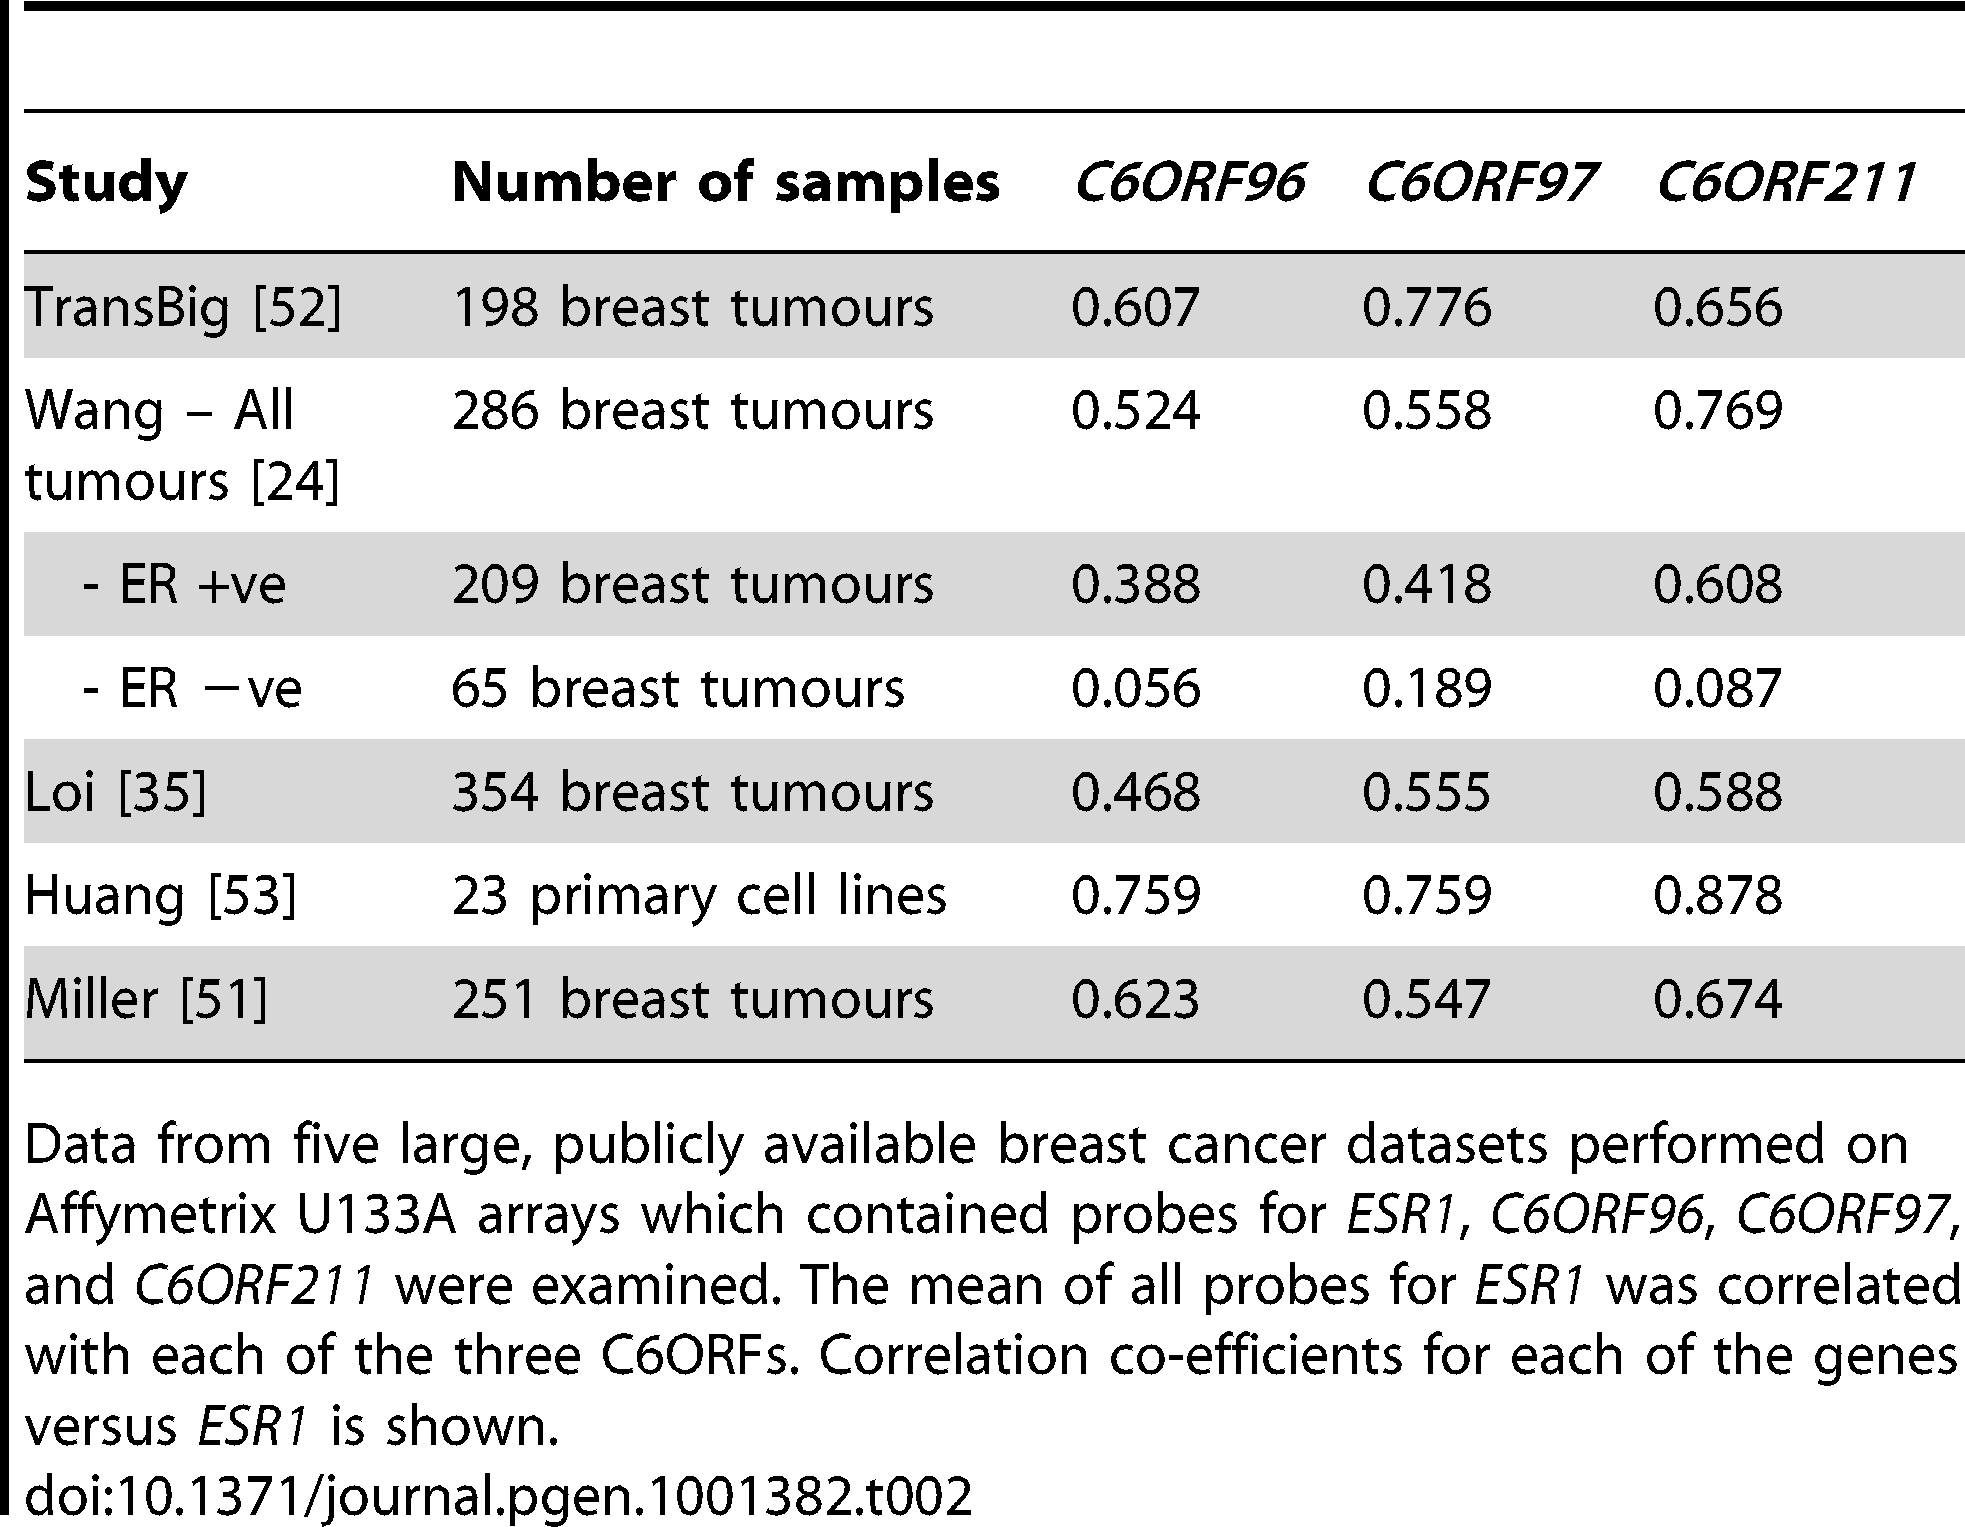 Correlations in other breast cancer datasets.